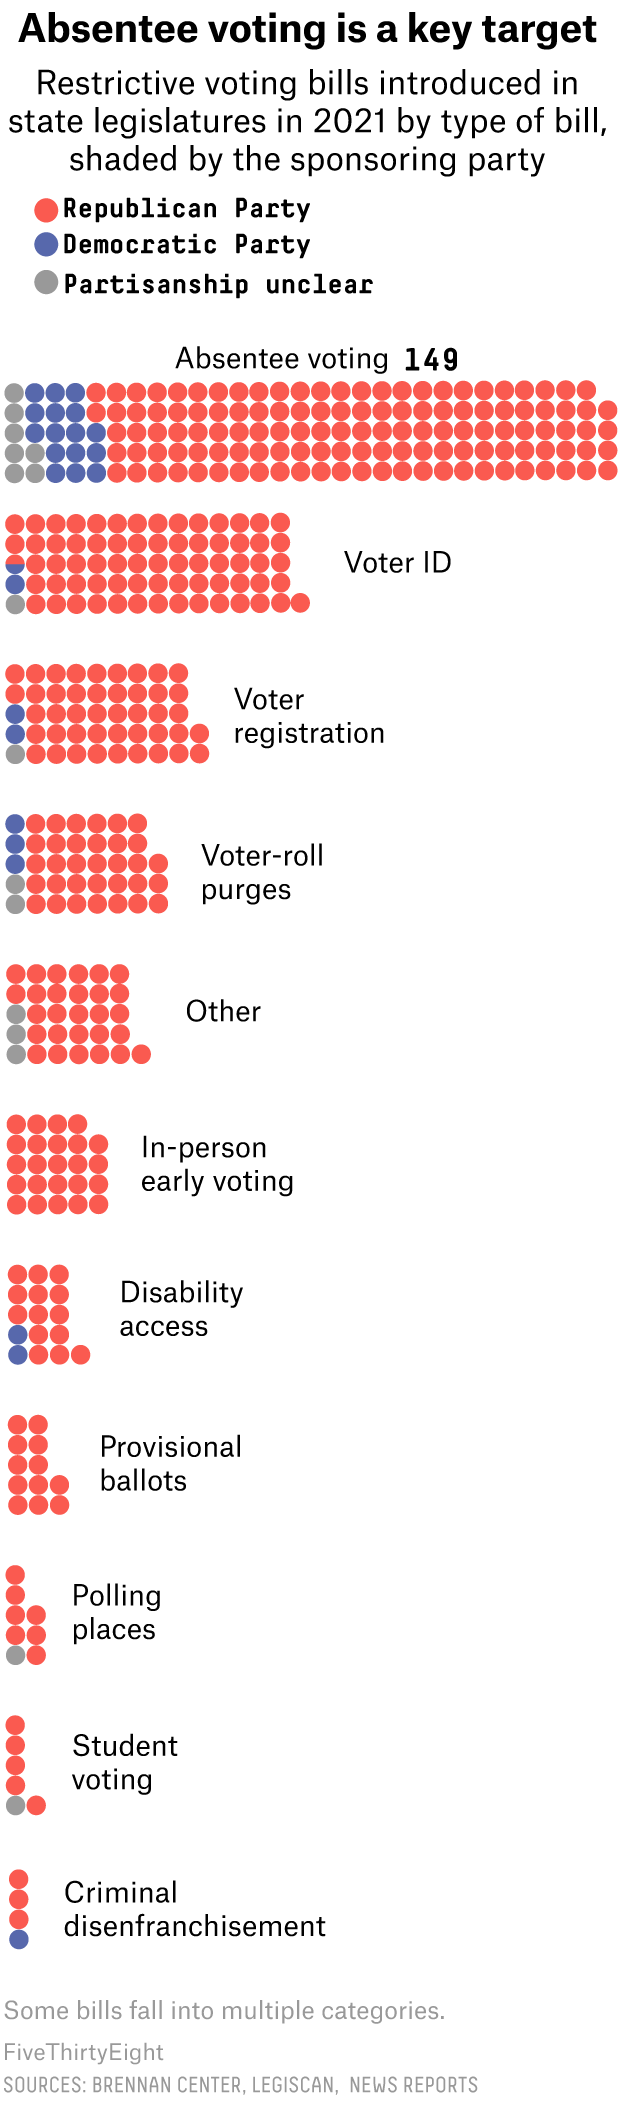 Why We Are (And Should Be) Talking About Voting Rights Right Now 1